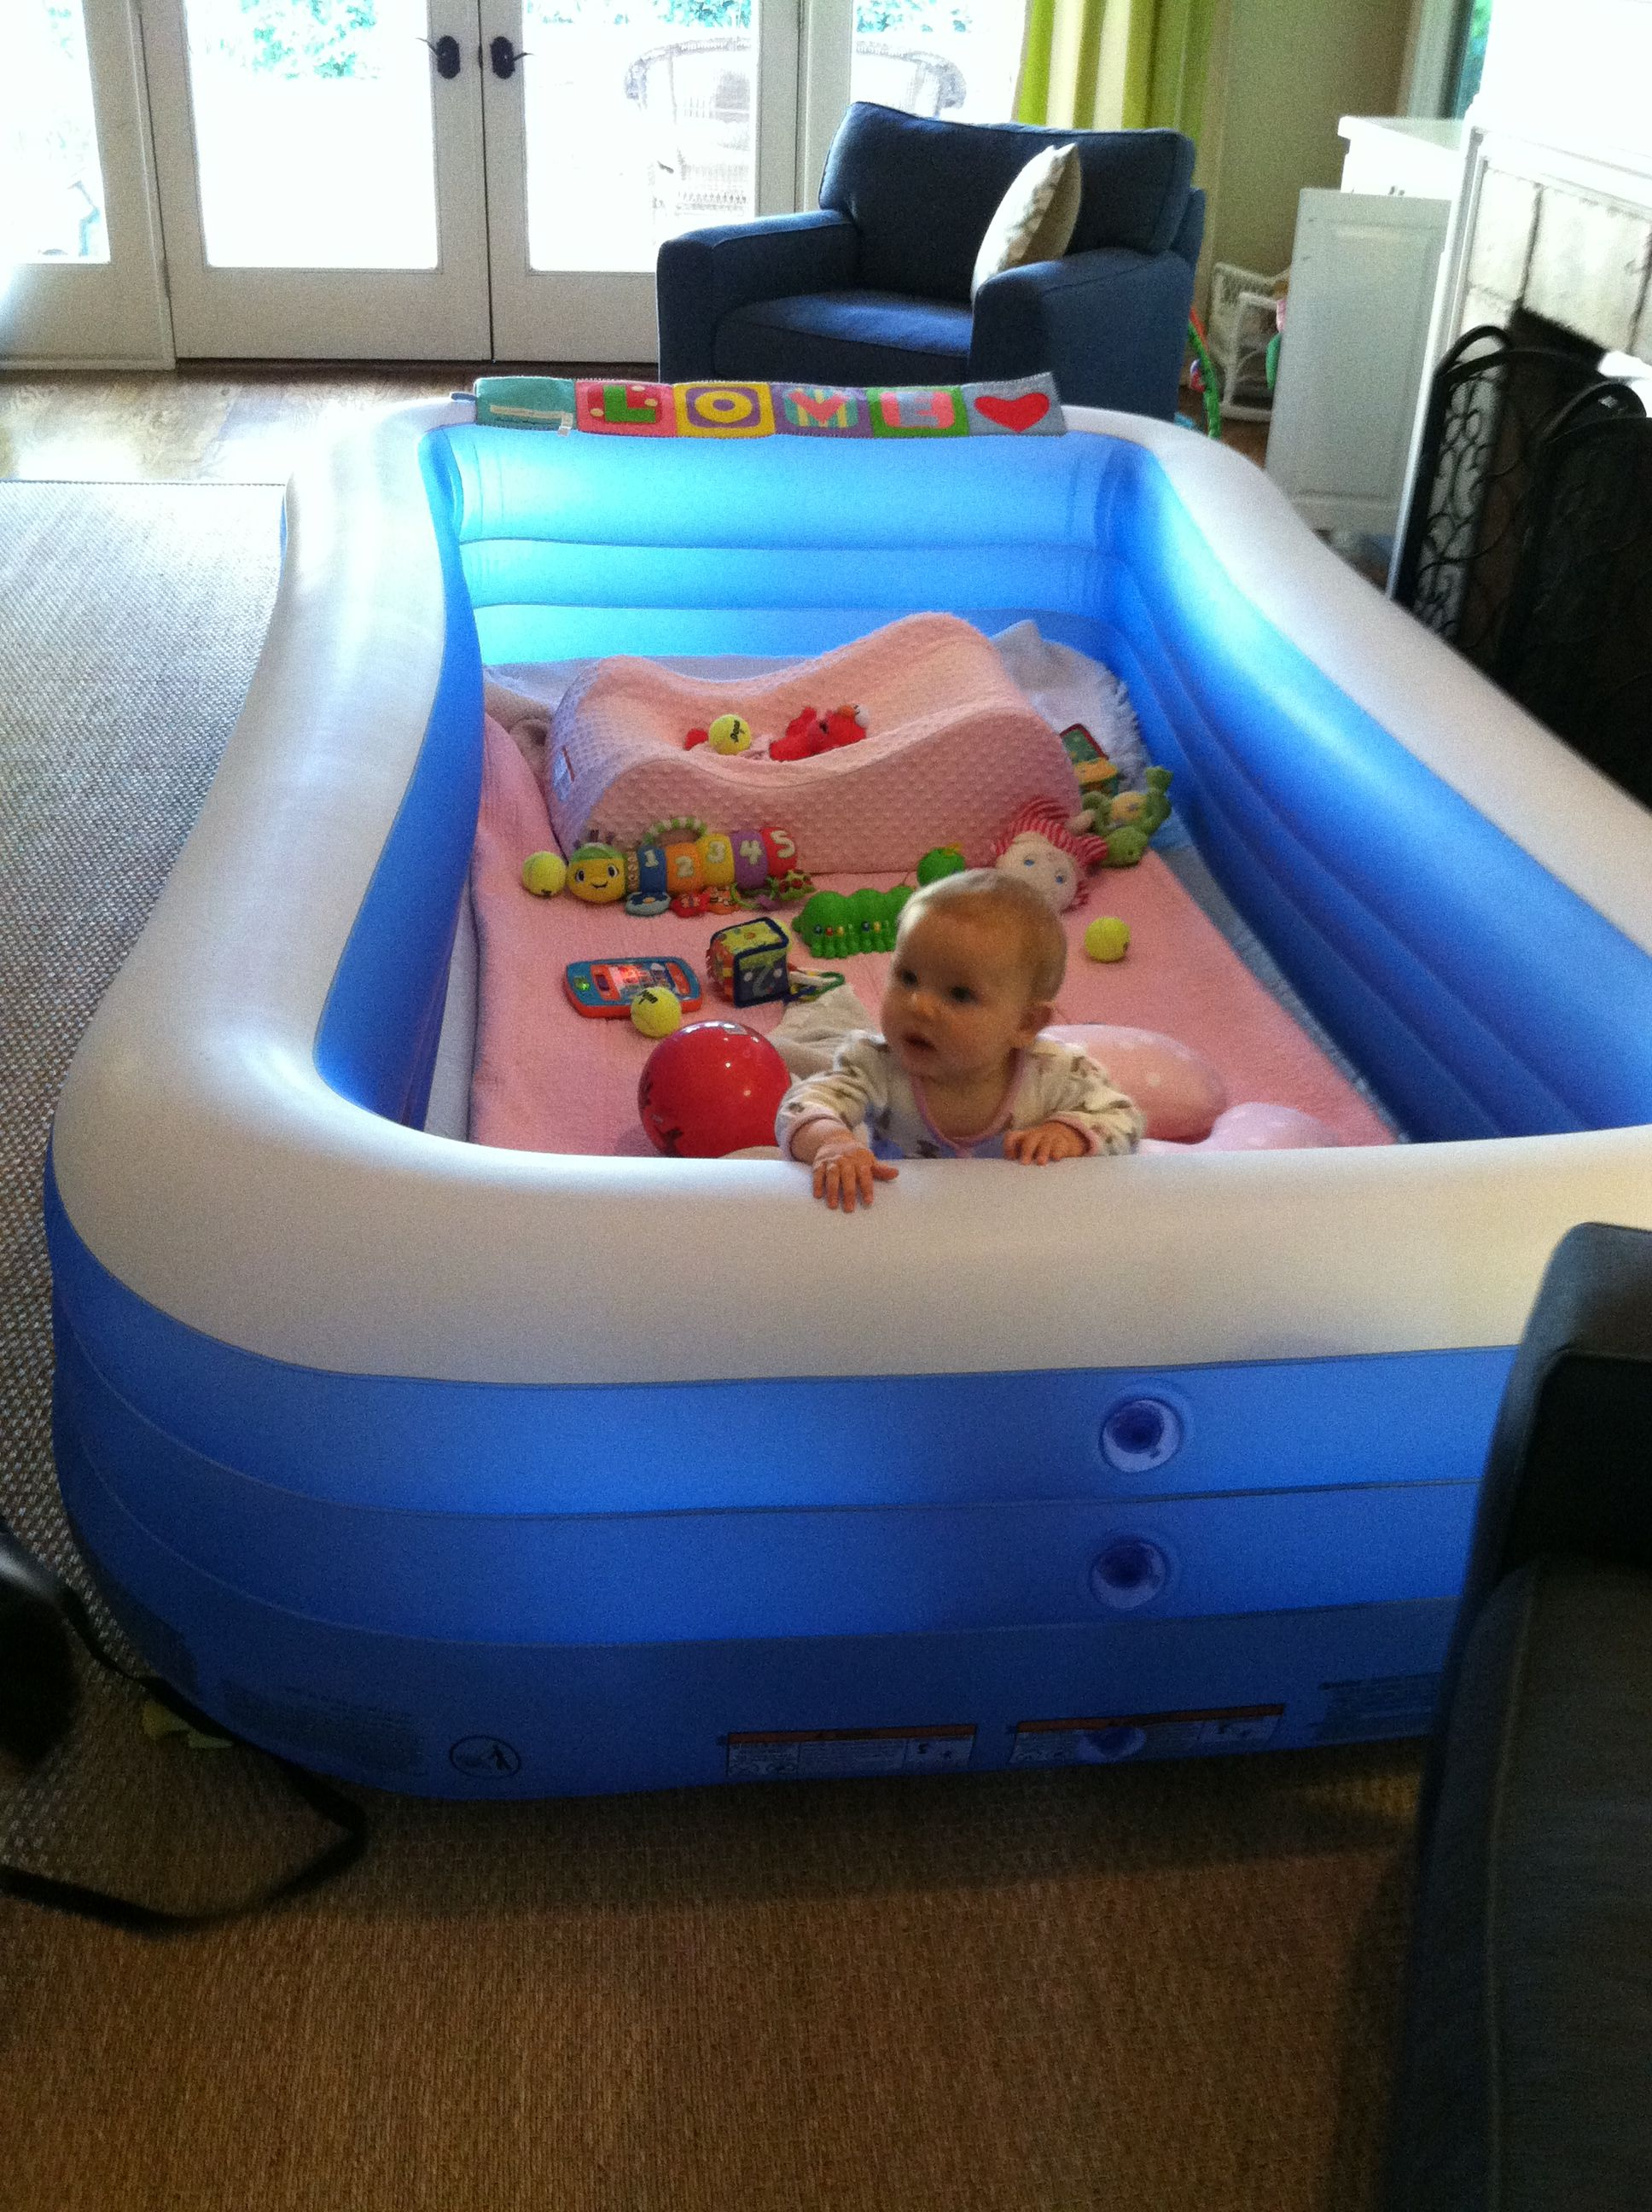 $29.99 Inflatable play pen or baby pool 29.99$ target best money spent all summer!!!